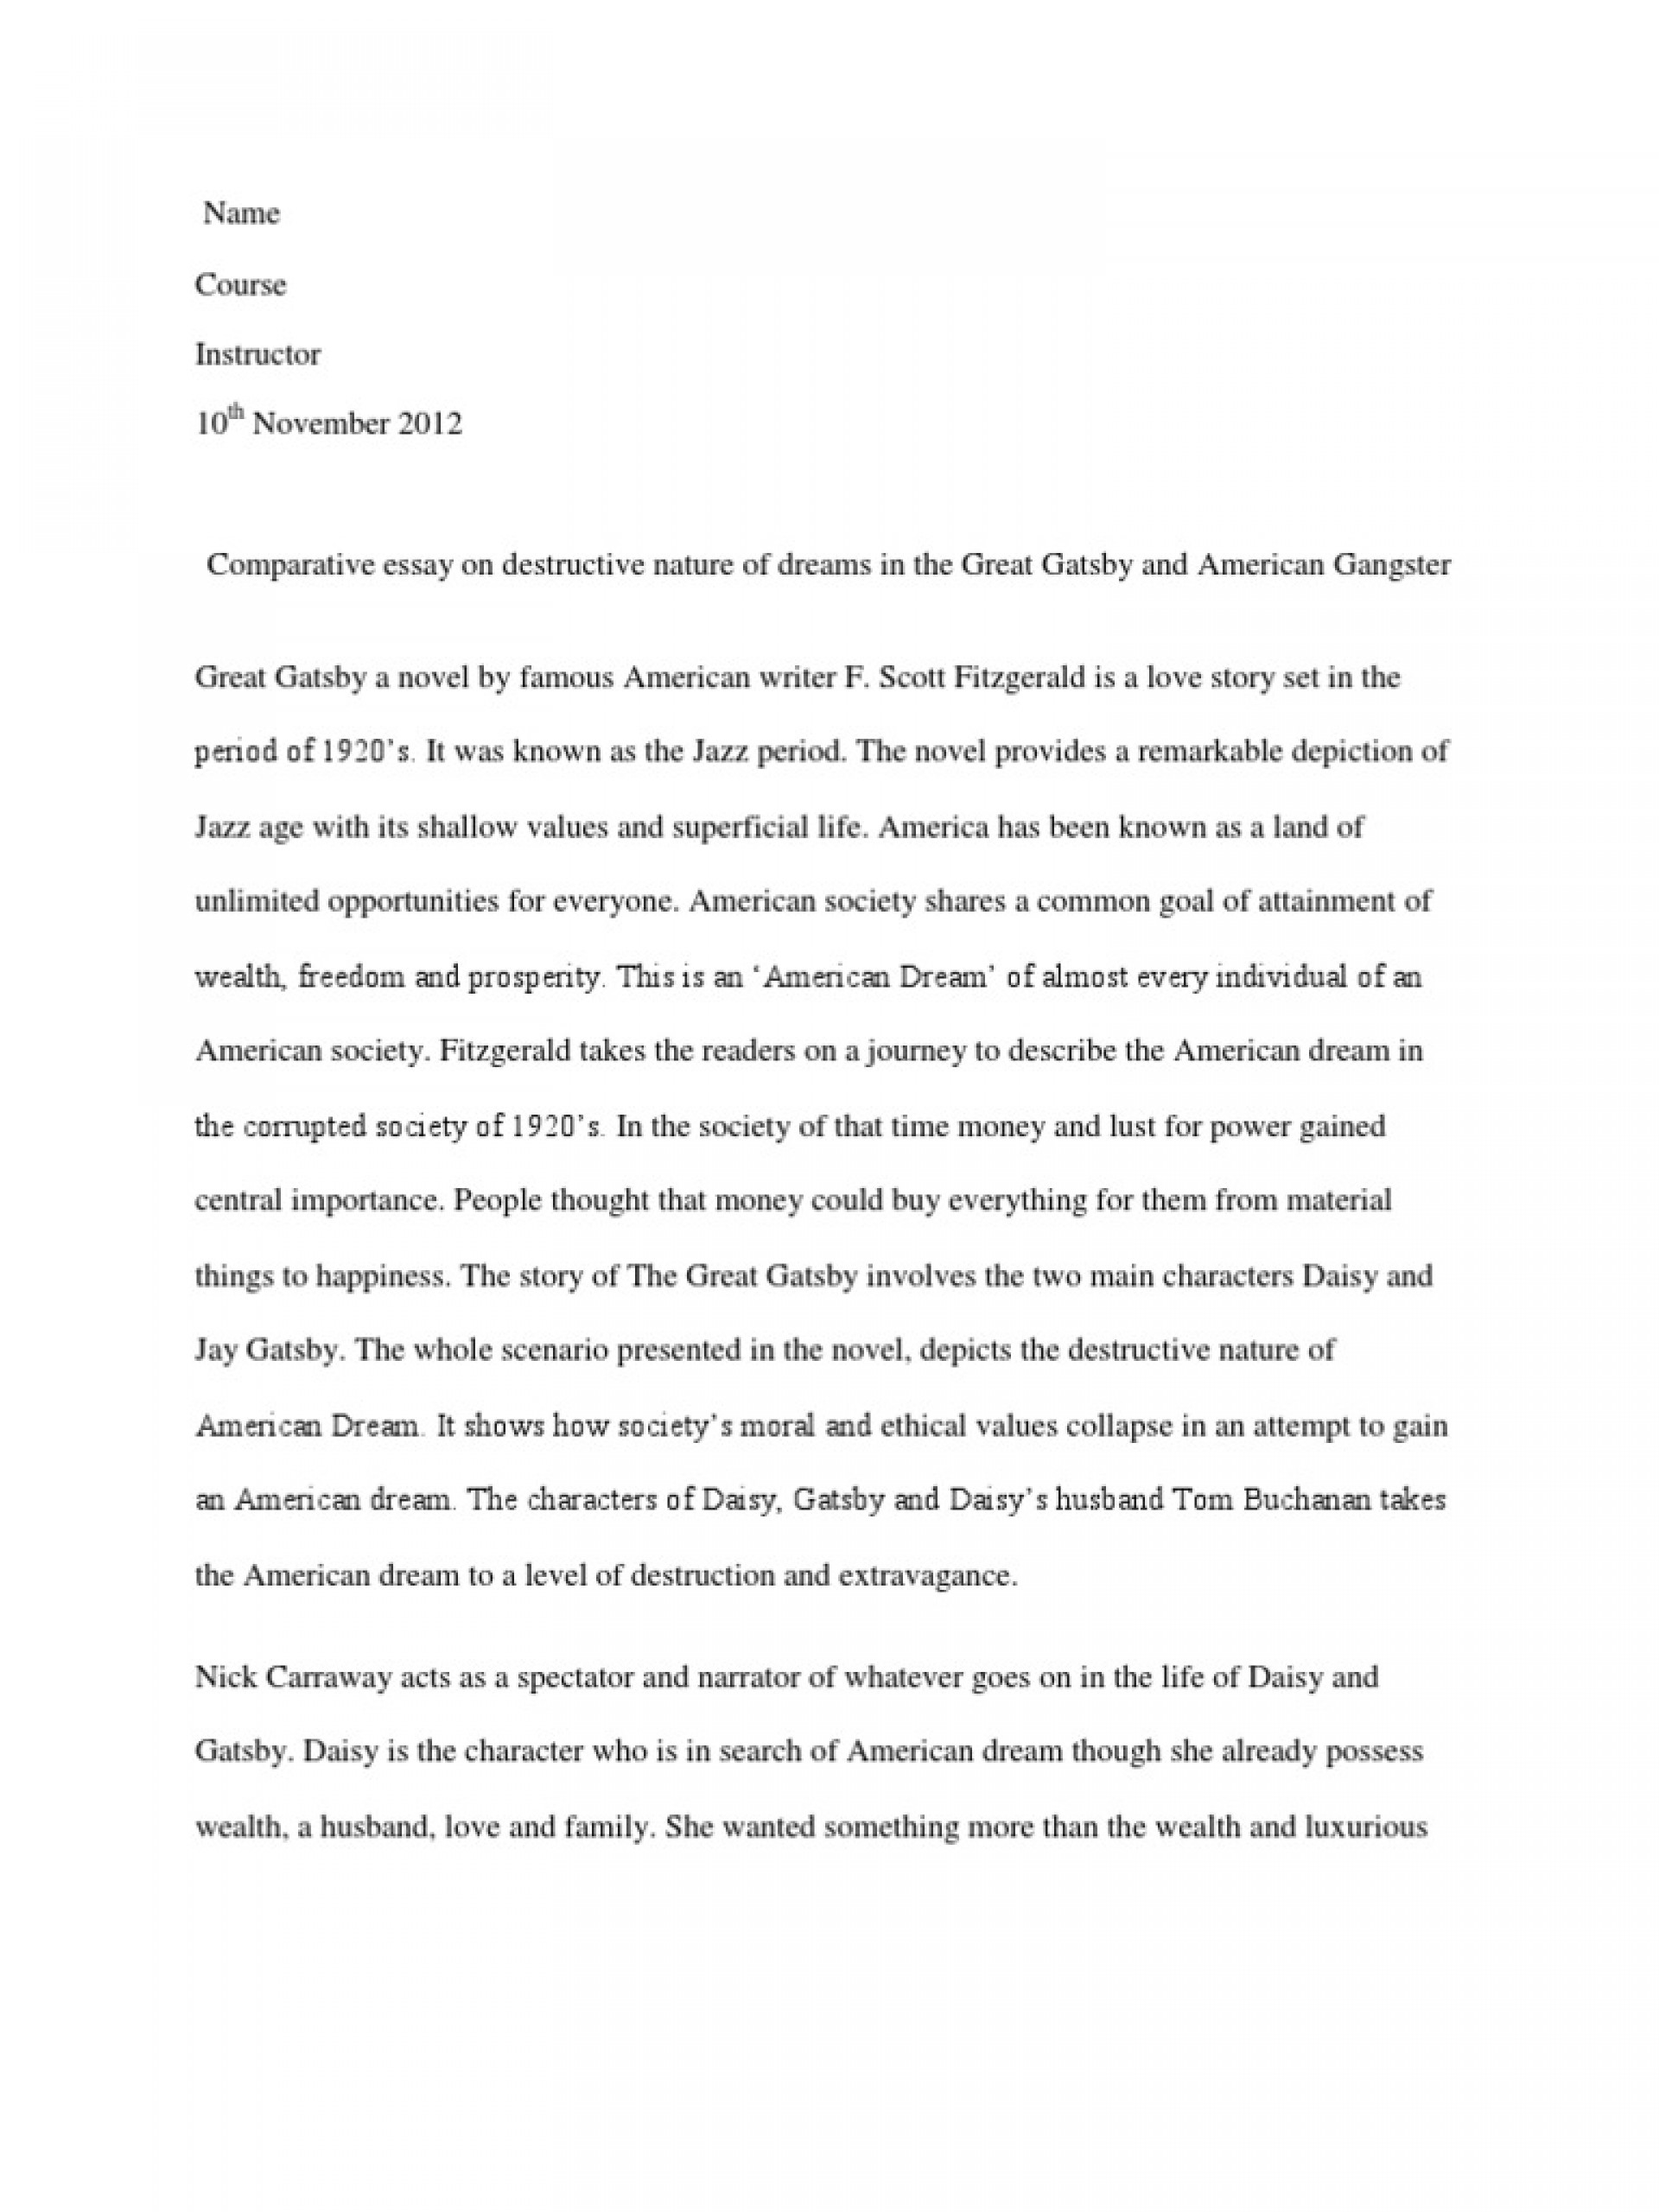 008 Comparative Essay On Destructive Nature Ofs  5884869ab6d87f259b8b49e2 Example American Unique Dream Topics Conclusion Great Gatsby Outline1920